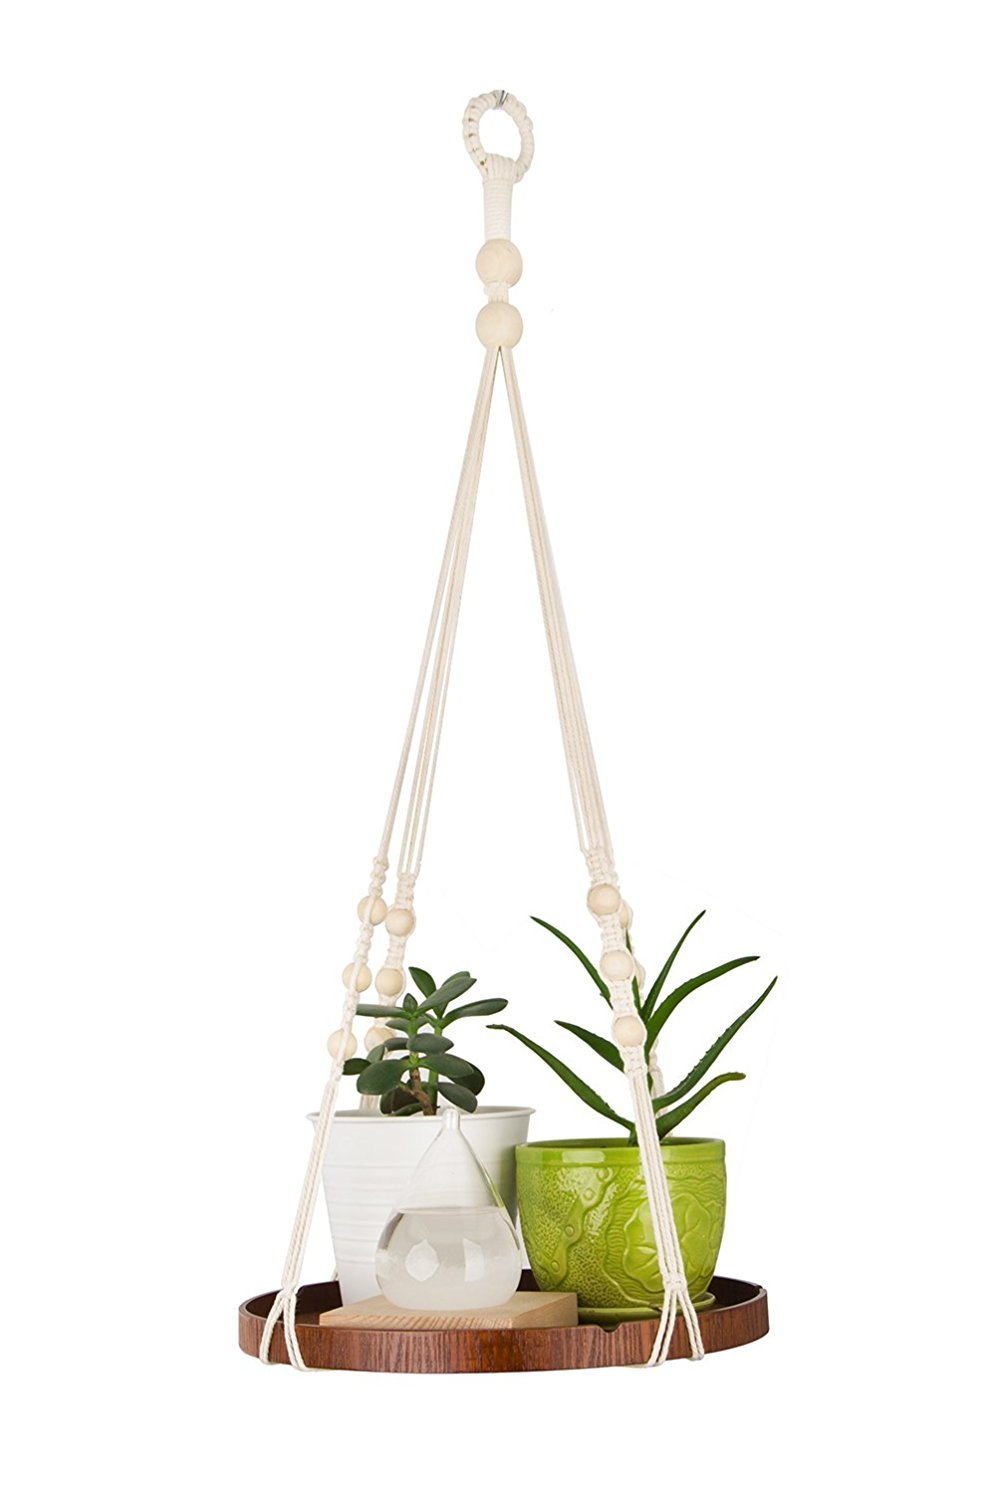 TIMEYARD Macrame Plant Hanger - Indoor Hanging Planter Shelf - Decorative Flower Pot Holder - Boho Bohemian Home Decor, in Box, for Succulents, Cacti, Herbs, Small Plants